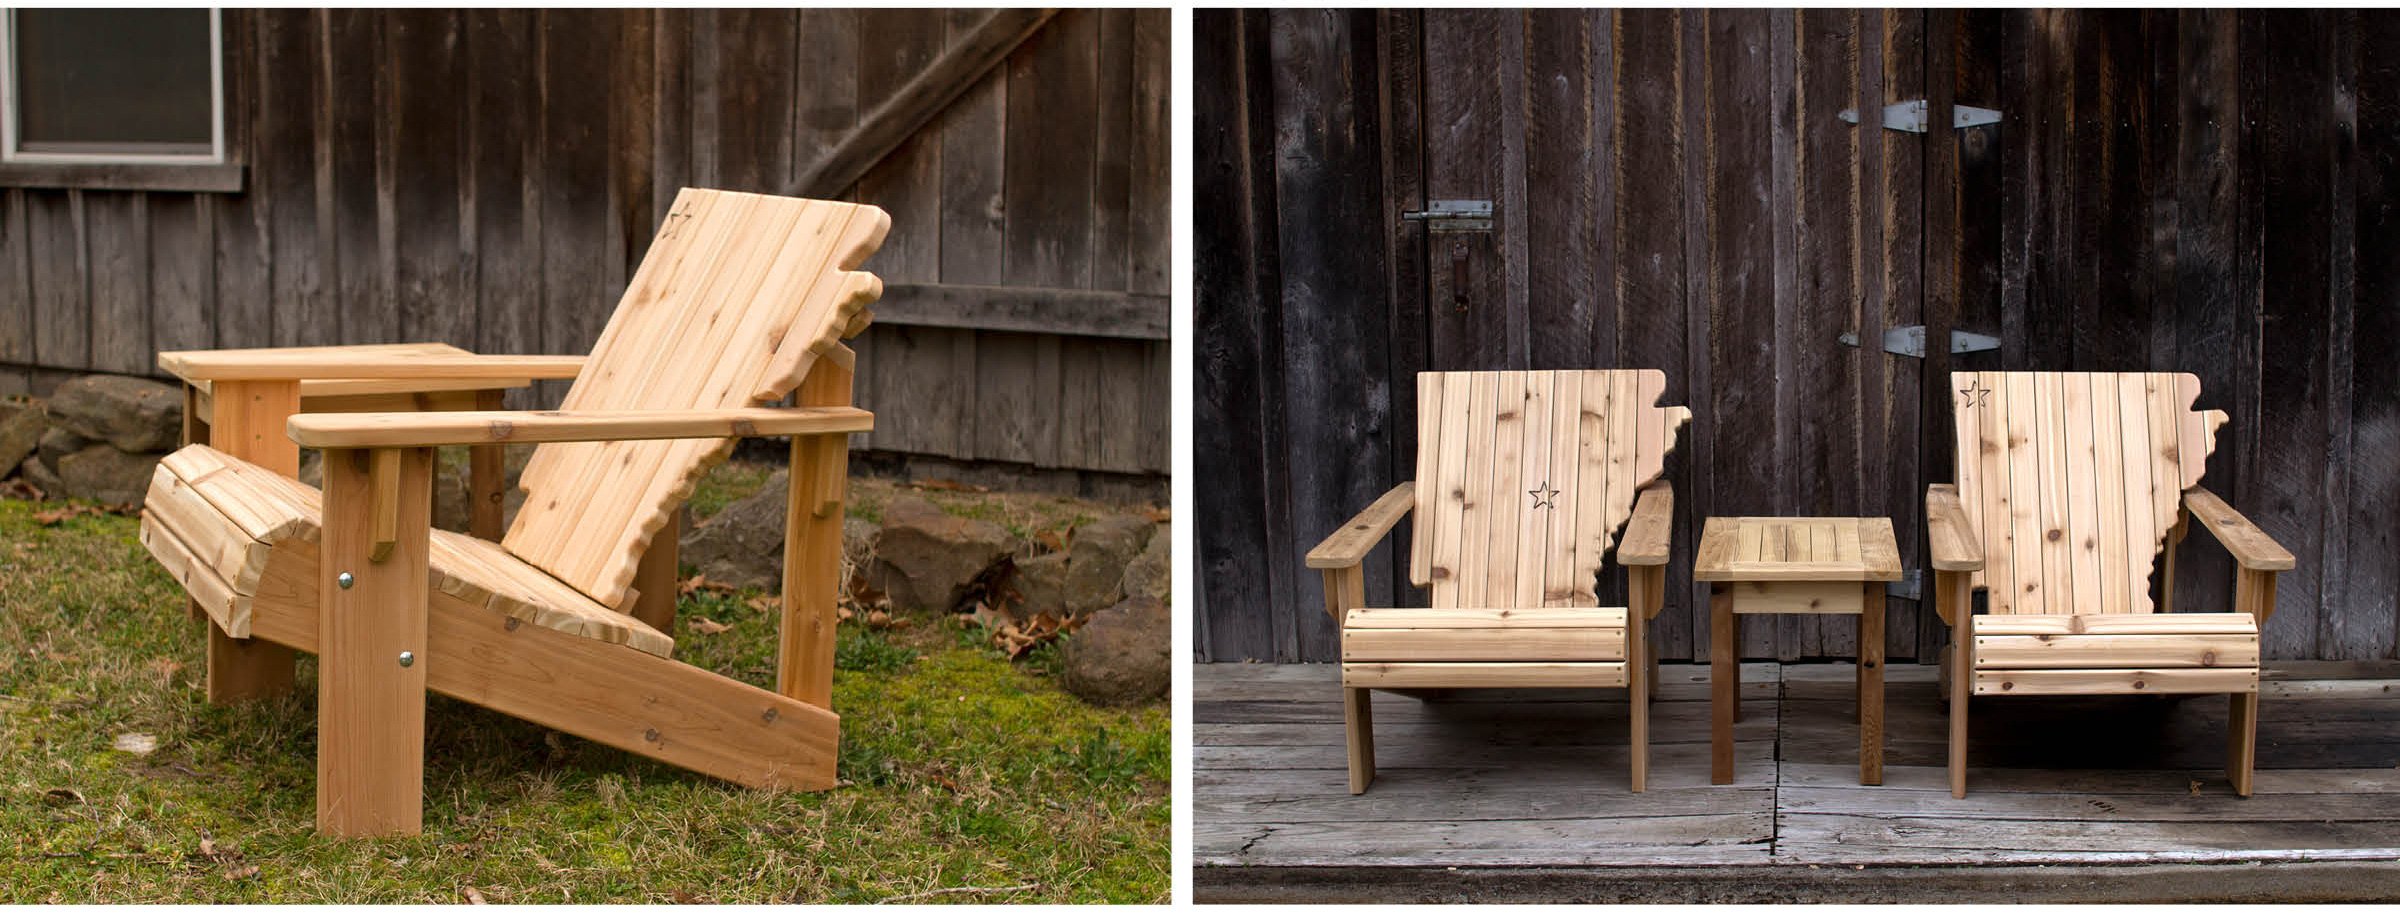 His Adirondack-style chairs feature a Natural State-shaped backrest. Timbernak's finished Adirondack-style chairs are a study in craftsmanship both from the side (left) and from the front. Note the stars carved in for both Little Rock and Bentonville (right).